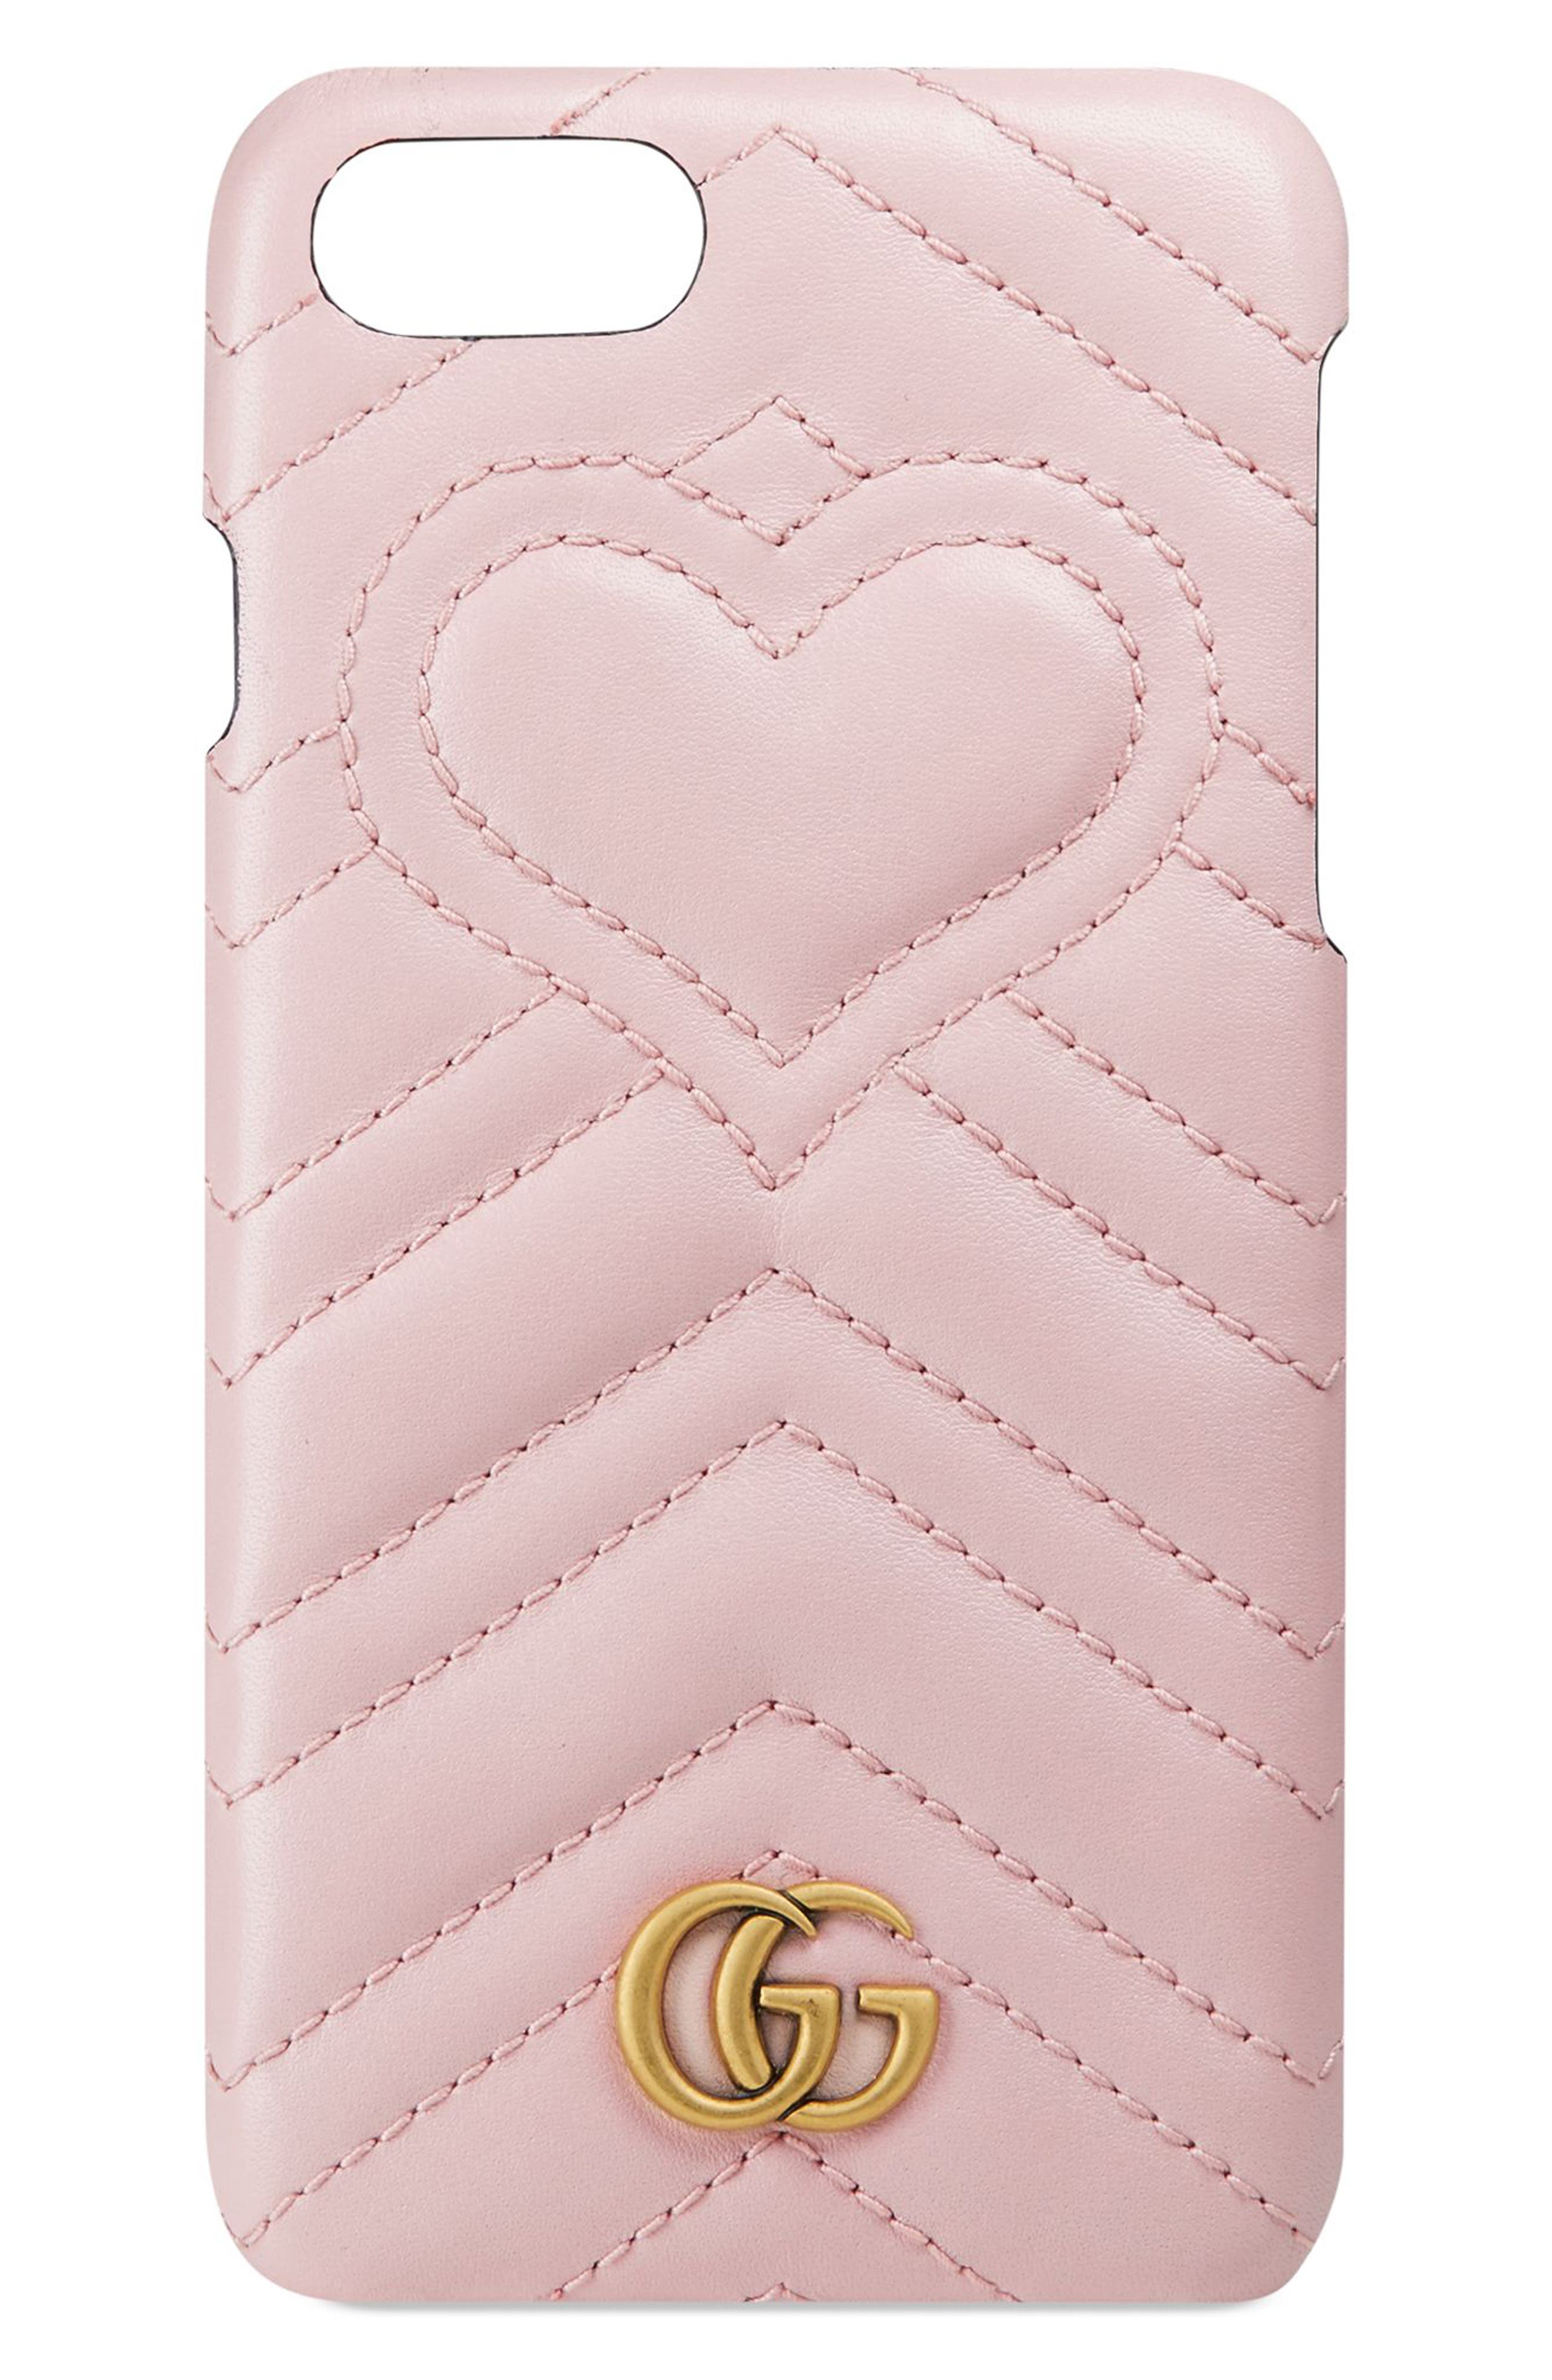 Alternate Image 1 Selected - Gucci GG Marmont Leather iPhone 7 Case